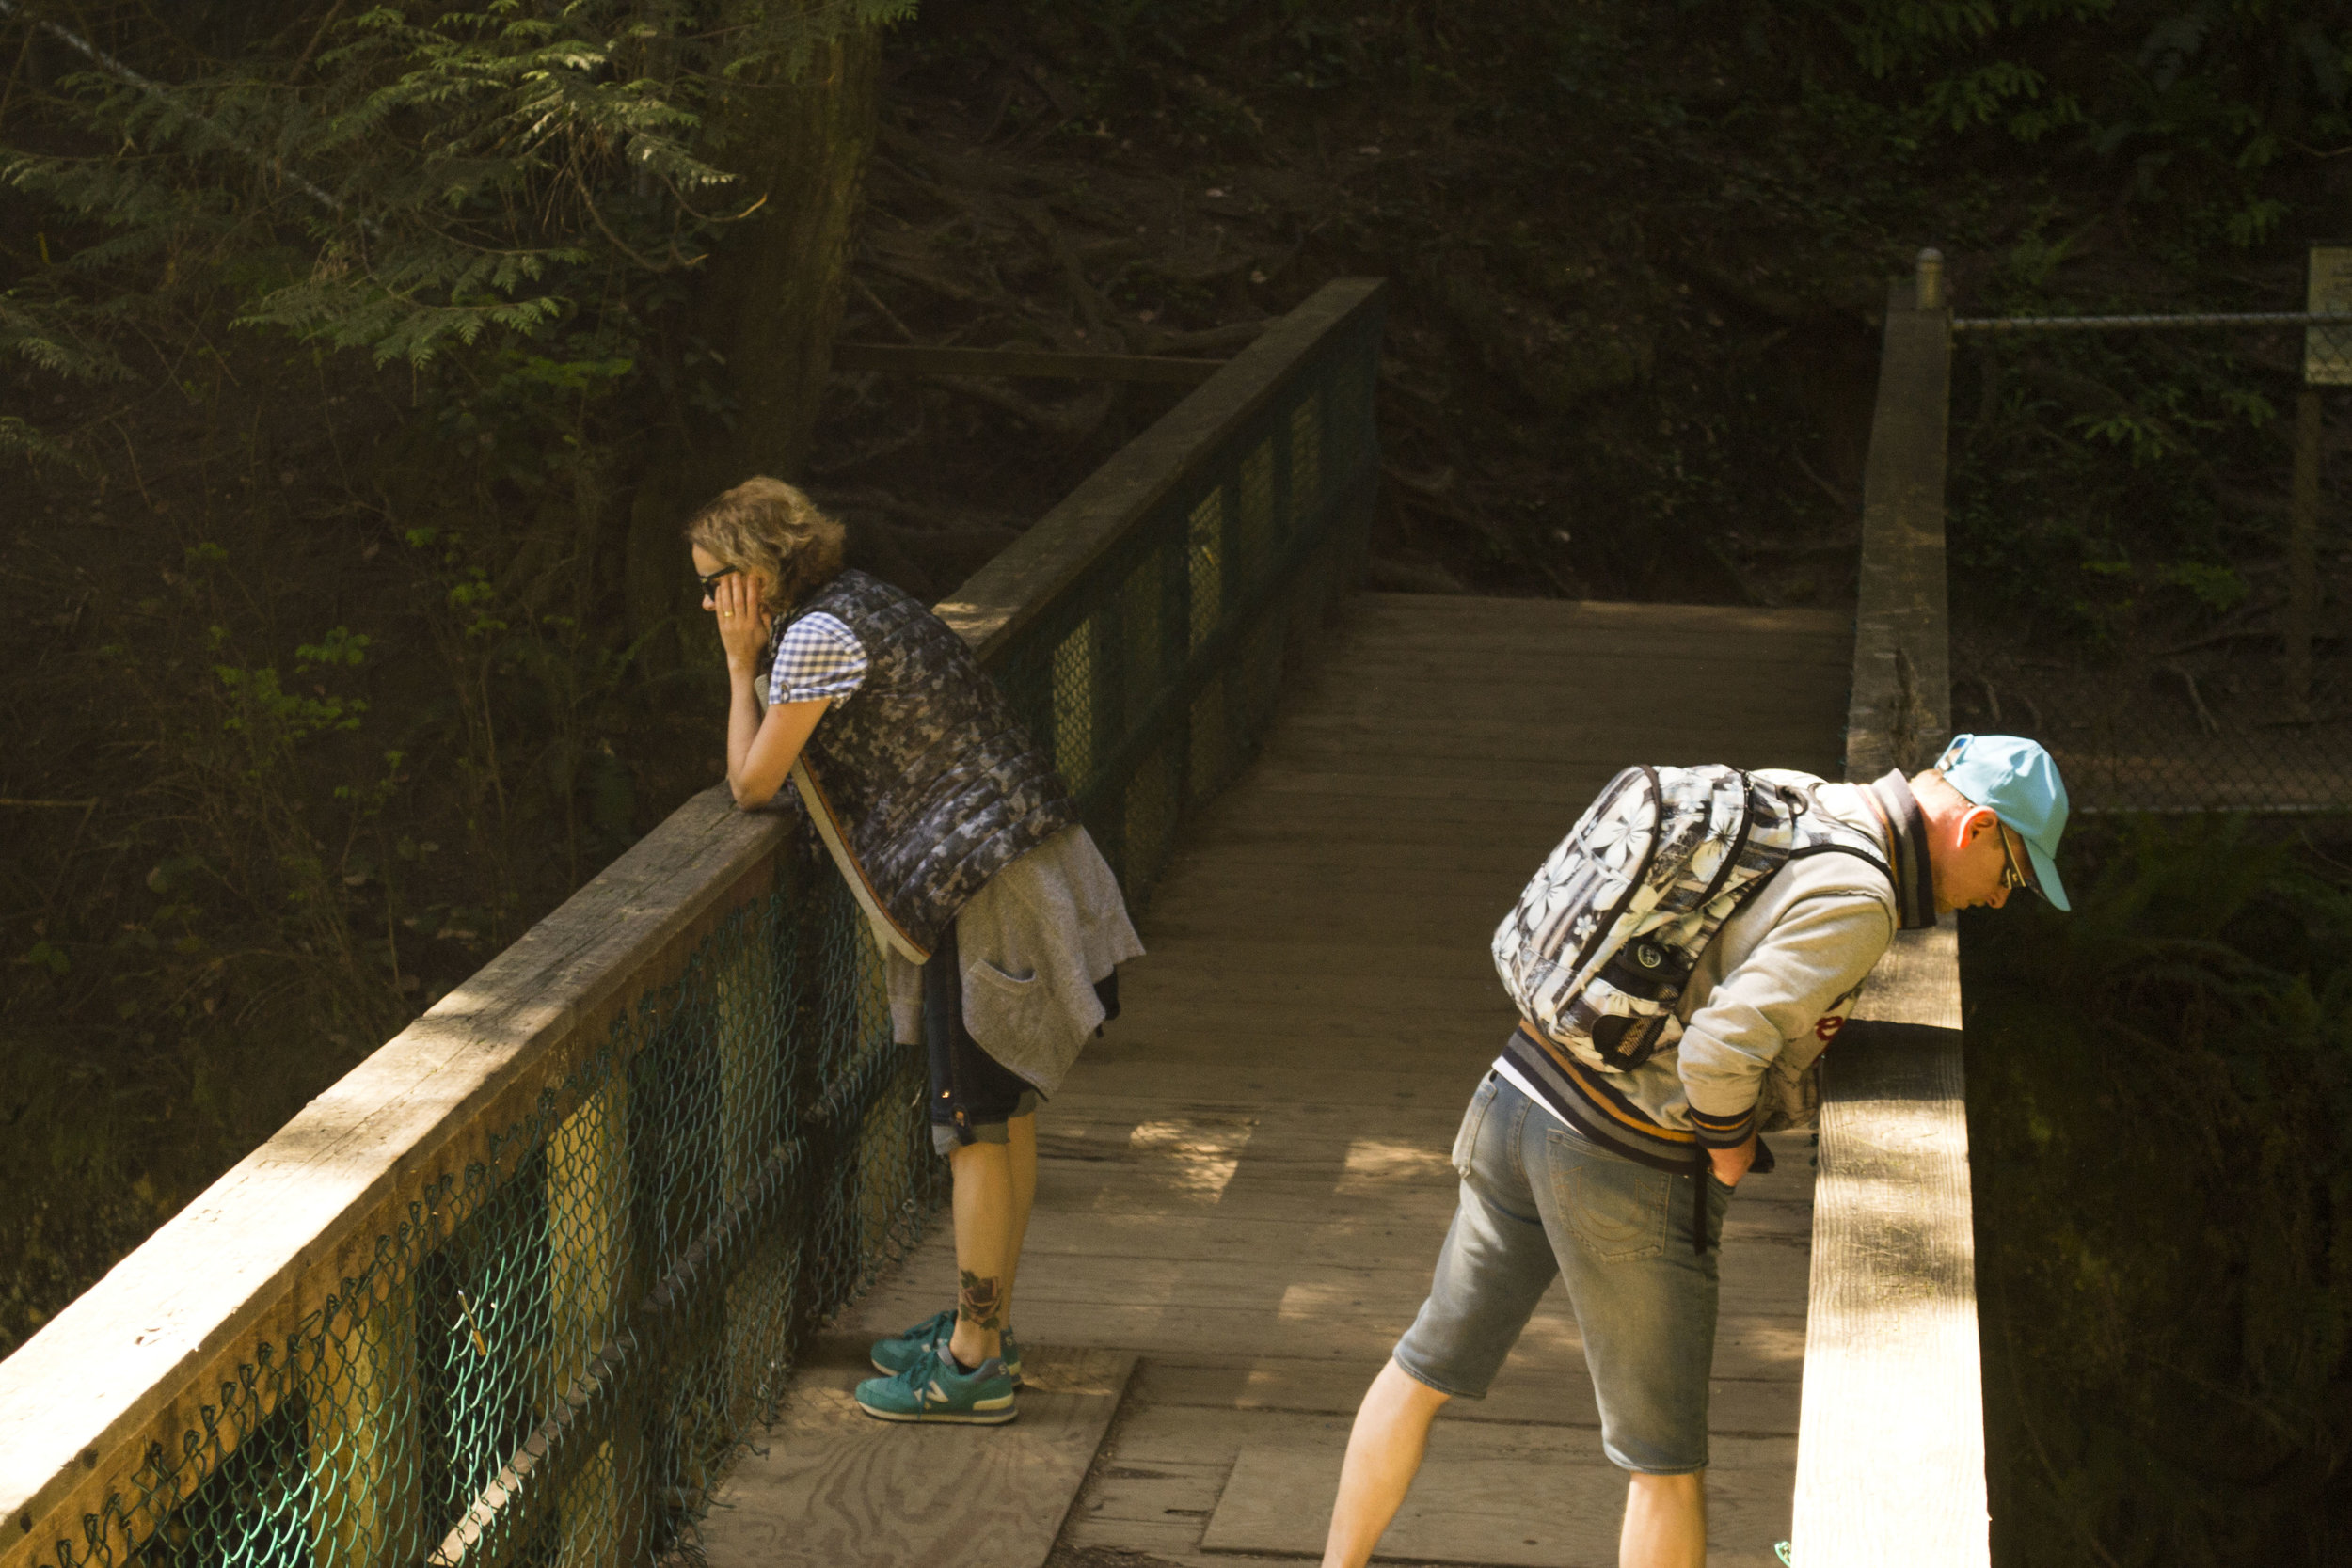 Guided Vancouver bike tour in Lynn Canyon